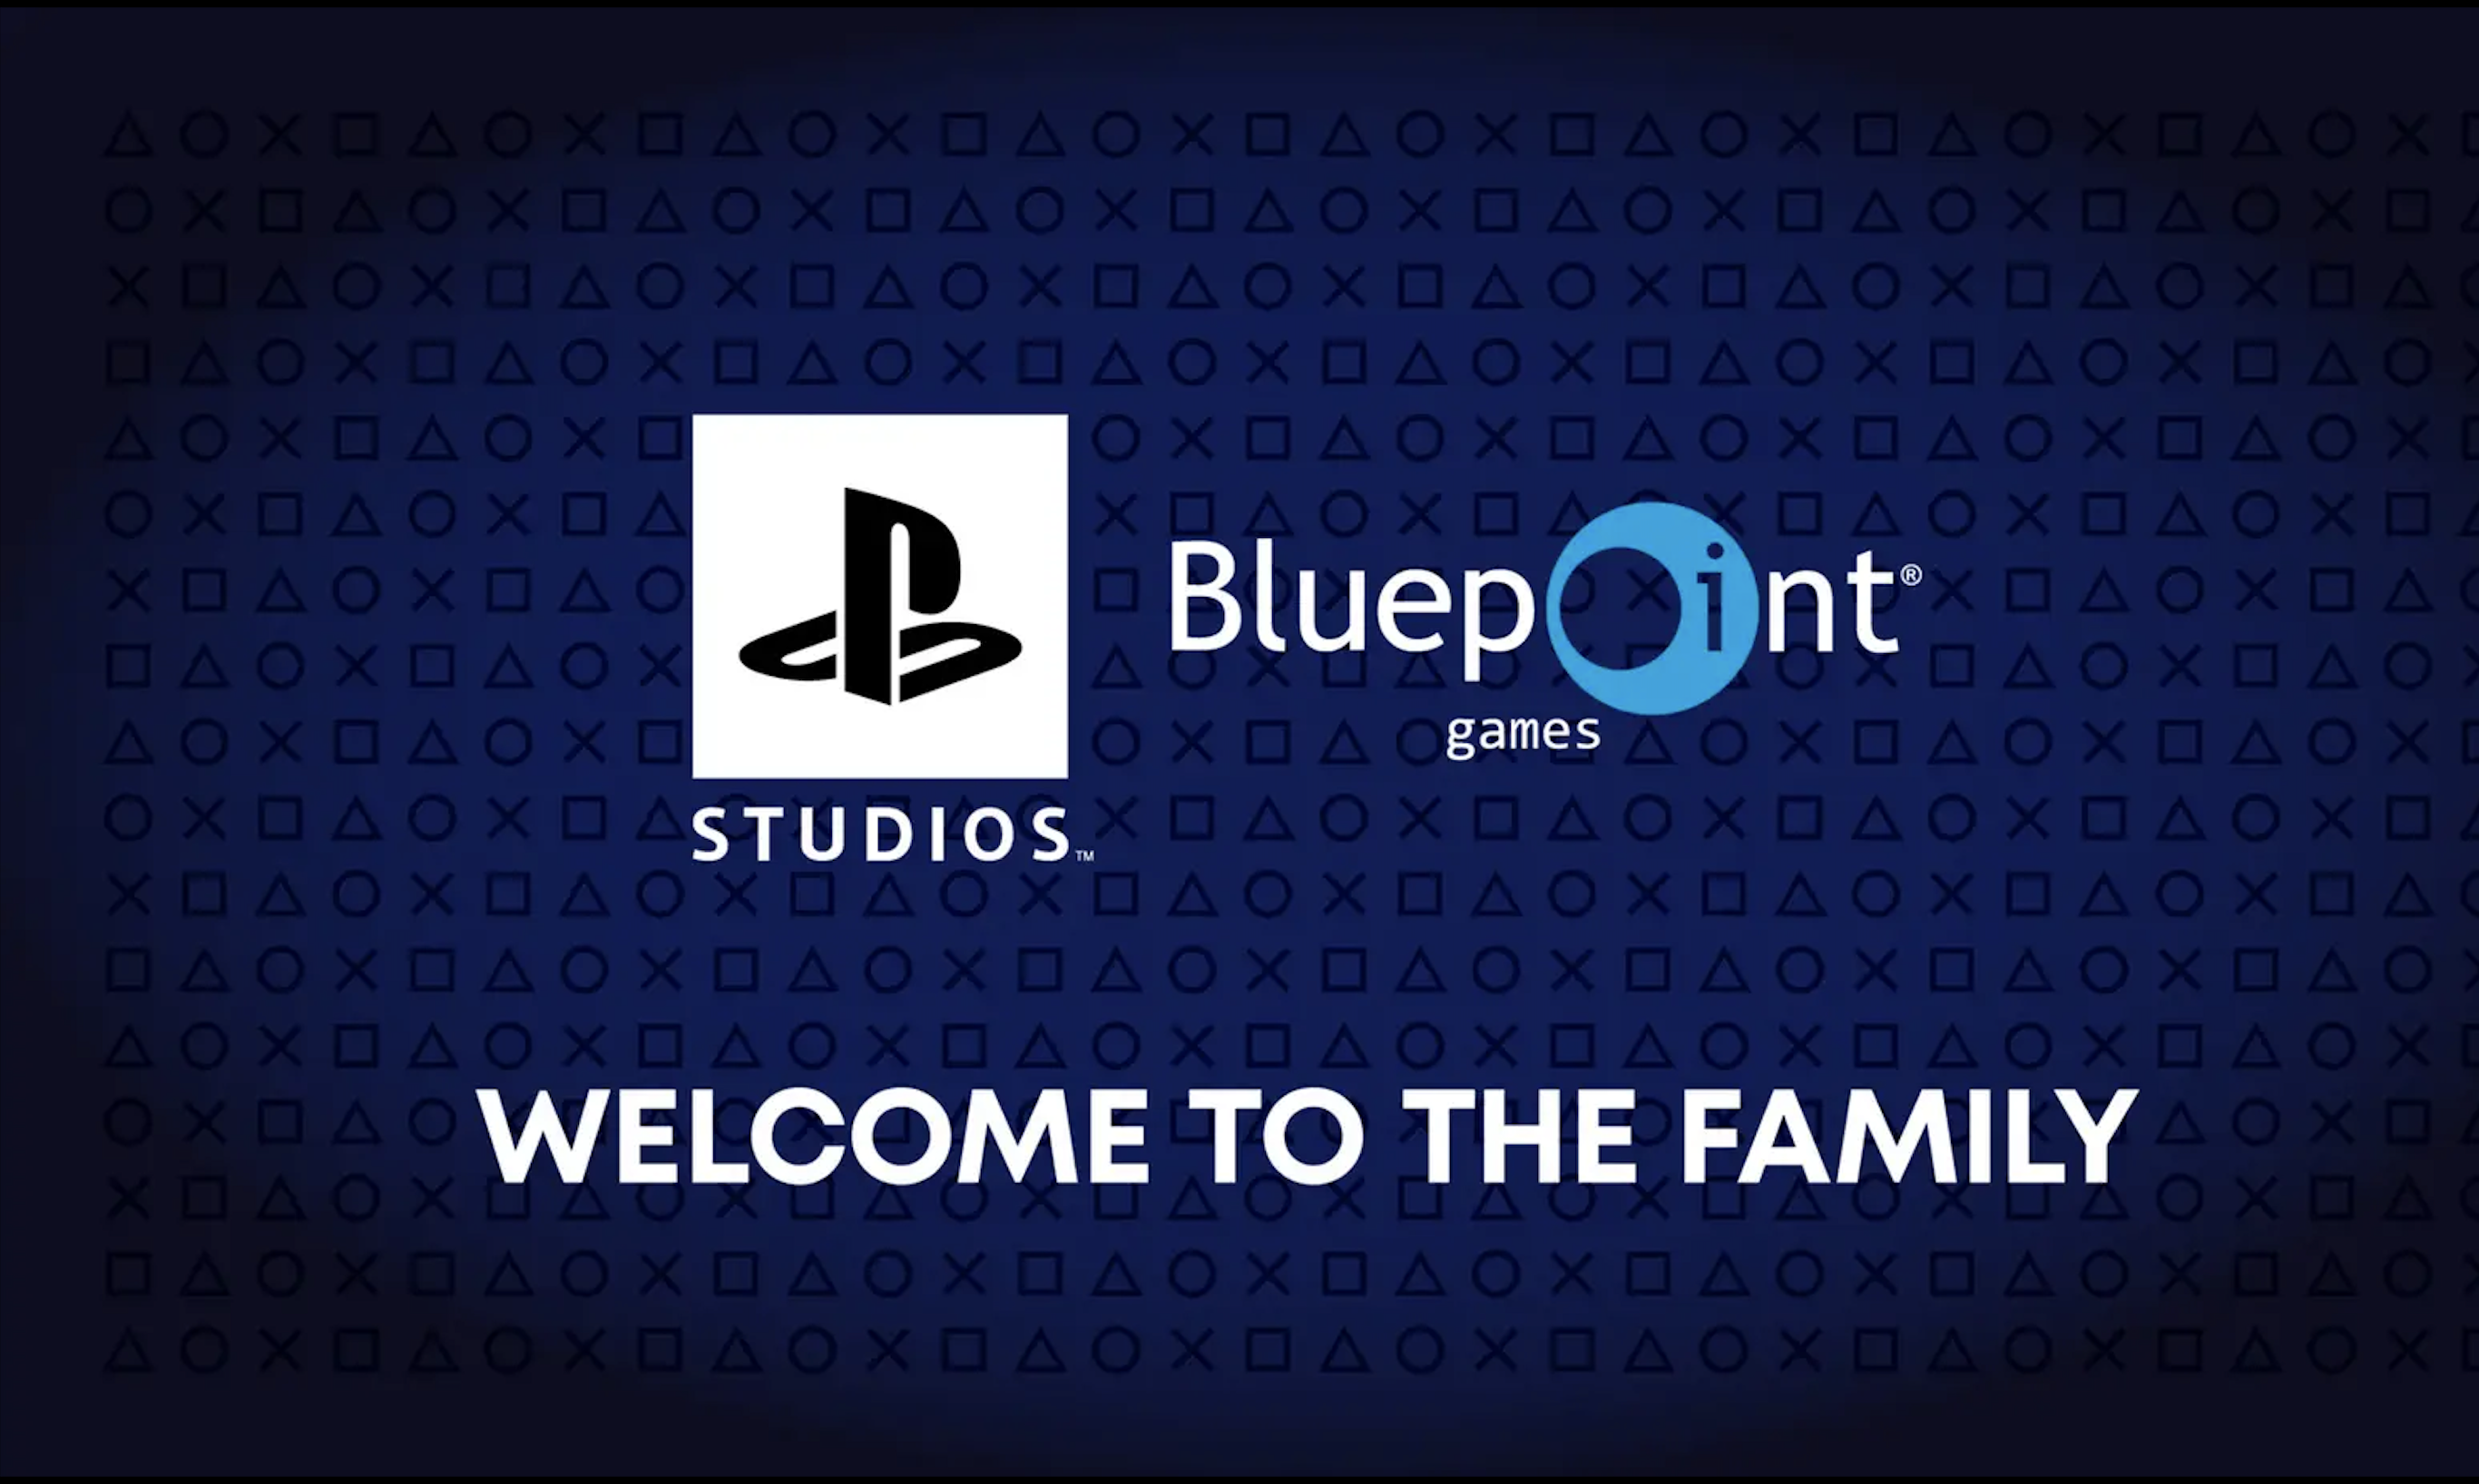 Sony and Bluepoint